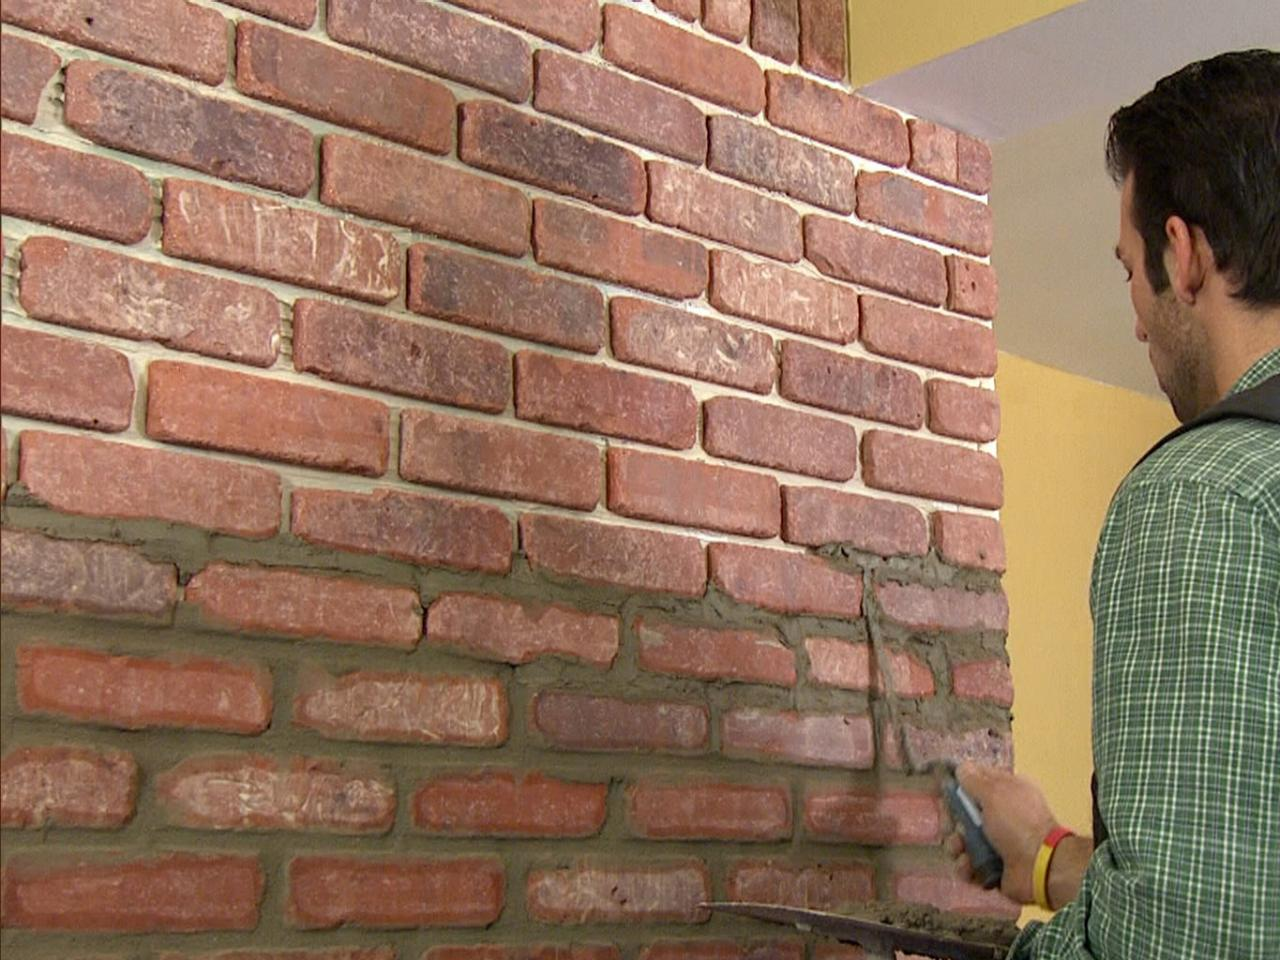 How to install brick veneer on a wall how tos diy How to put tile on wall in the kitchen